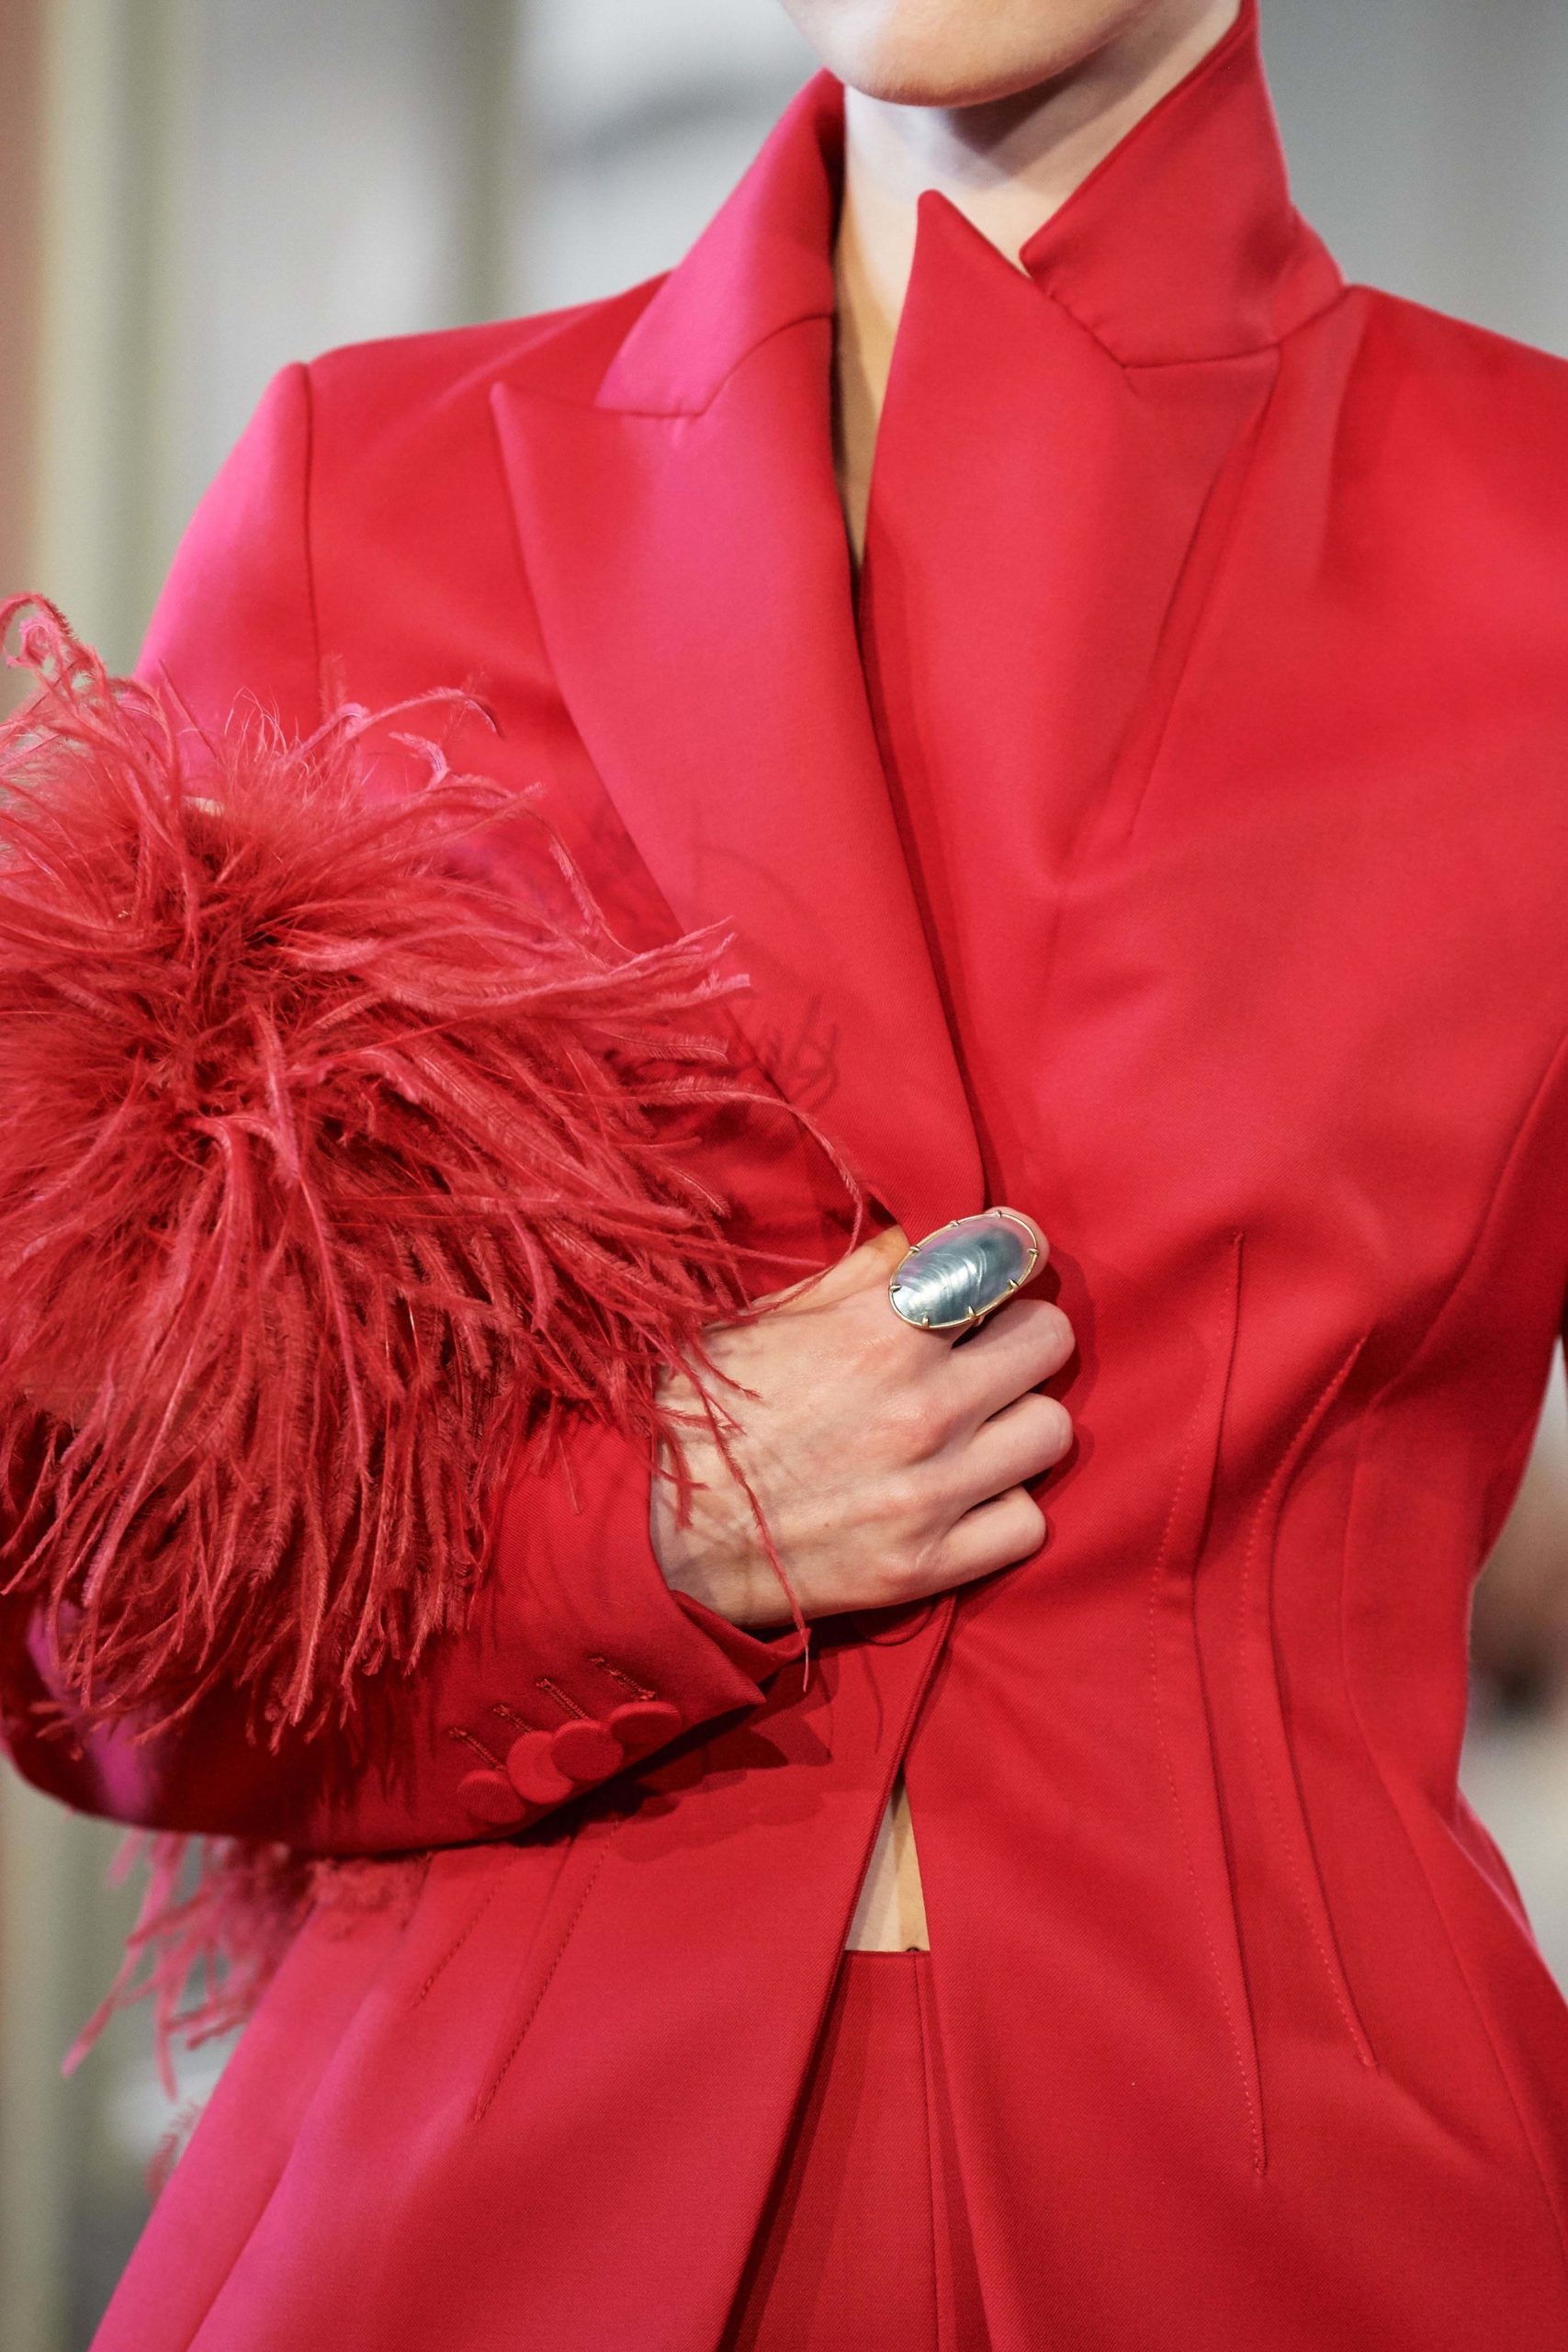 Altuzarra details Fall 2020 trends runway coverage Ready To Wear Vogue best of accessories fall 2020 jewels